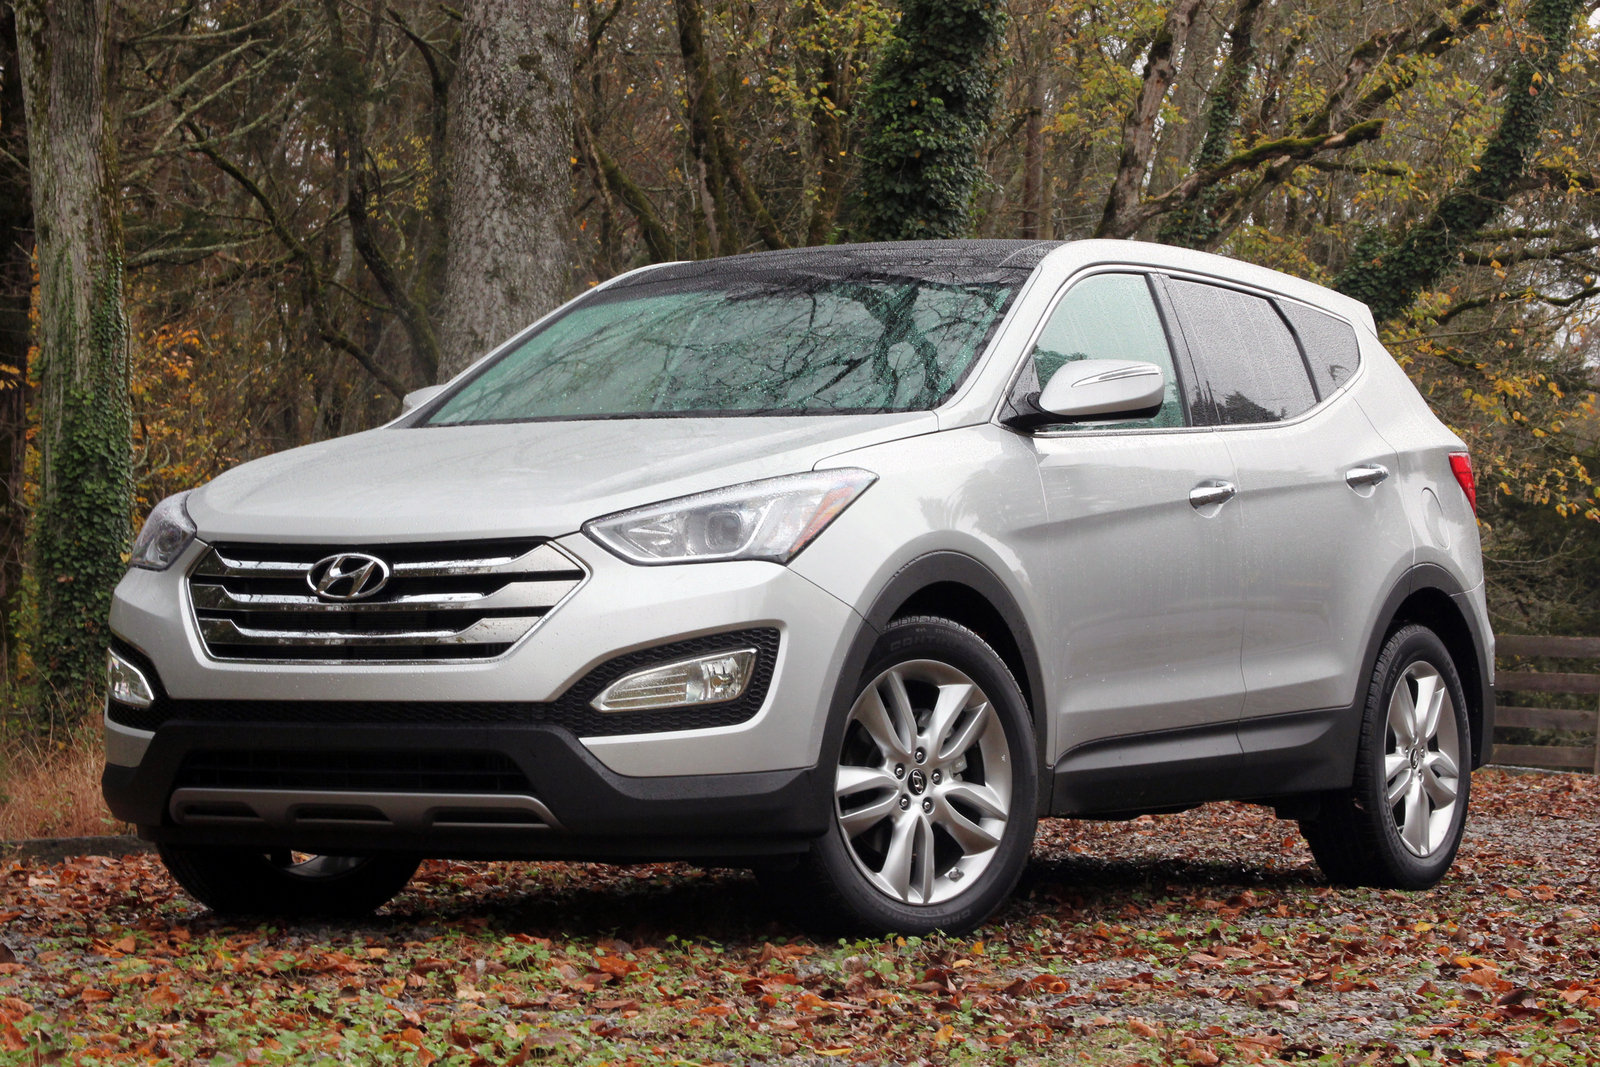 2014 hyundai santa fe sport driven picture 574538 car review top speed. Black Bedroom Furniture Sets. Home Design Ideas